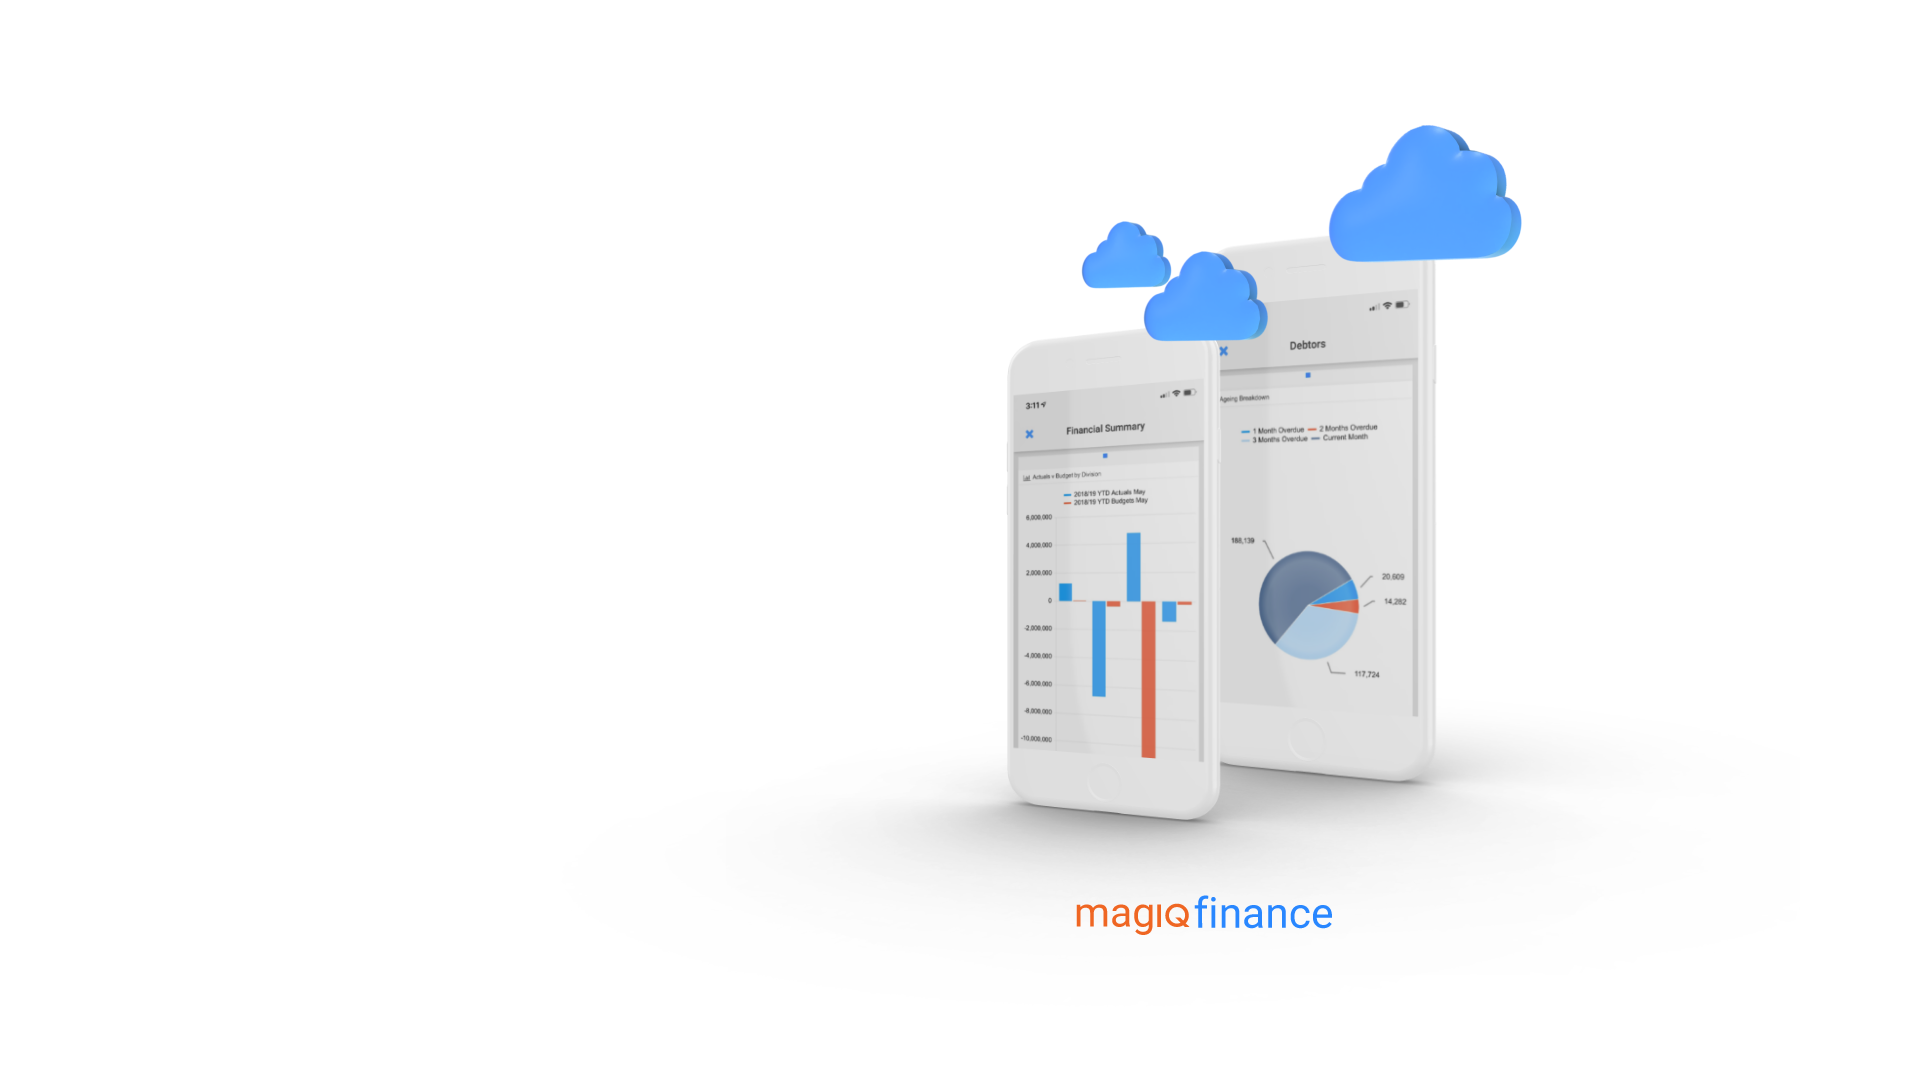 MAGIQ Finance